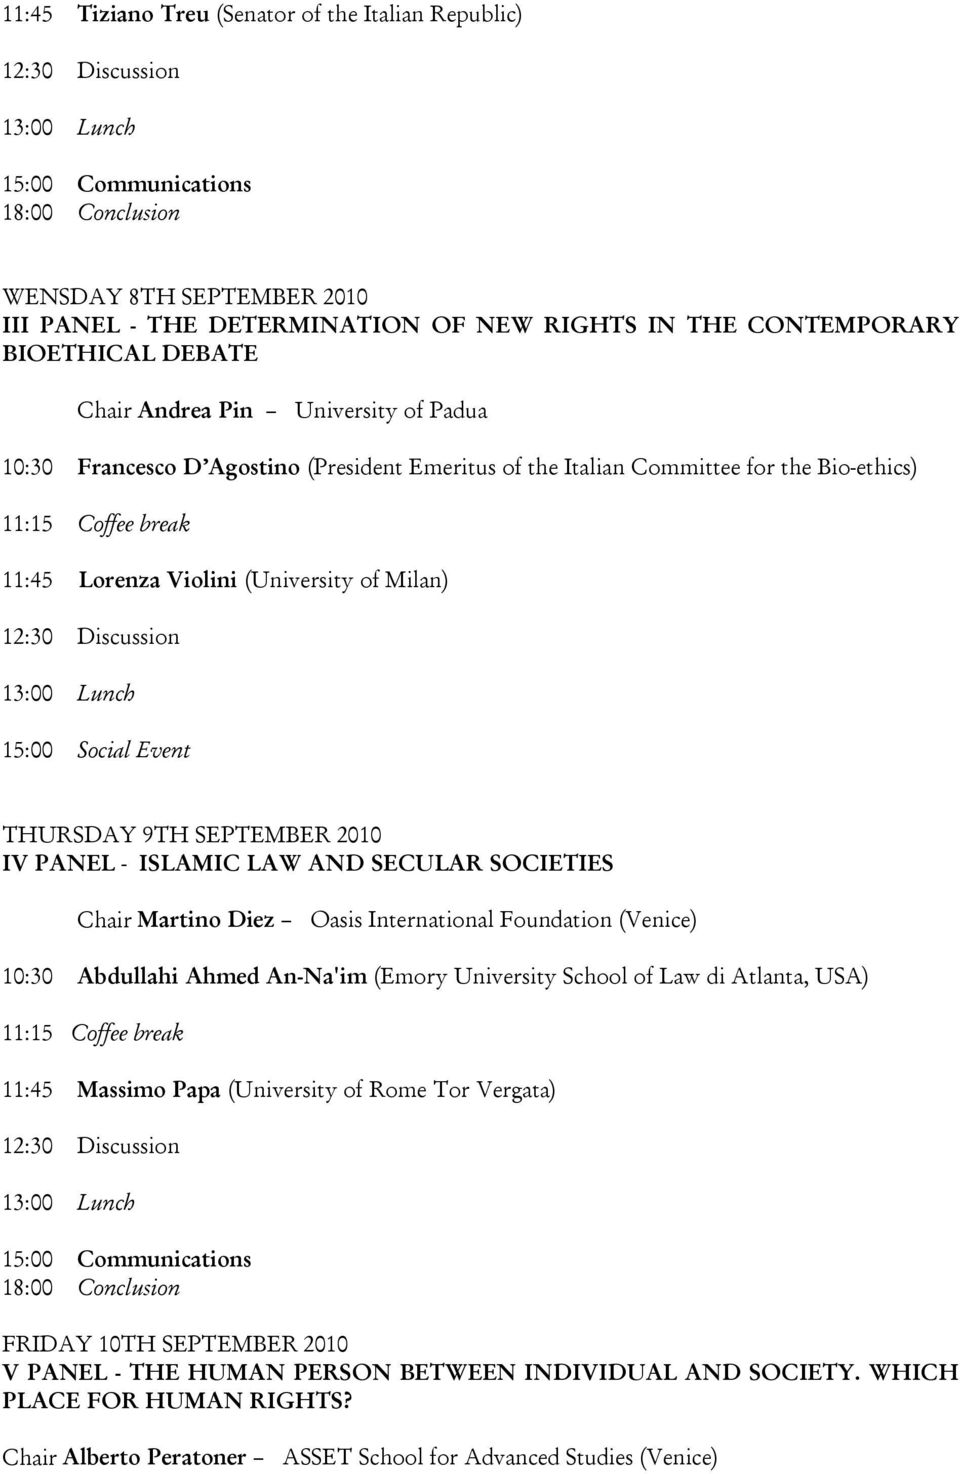 THURSDAY 9TH SEPTEMBER 2010 IV PANEL - ISLAMIC LAW AND SECULAR SOCIETIES Chair Martino Diez Oasis International Foundation (Venice) 10:30 Abdullahi Ahmed An-Na'im (Emory University School of Law di